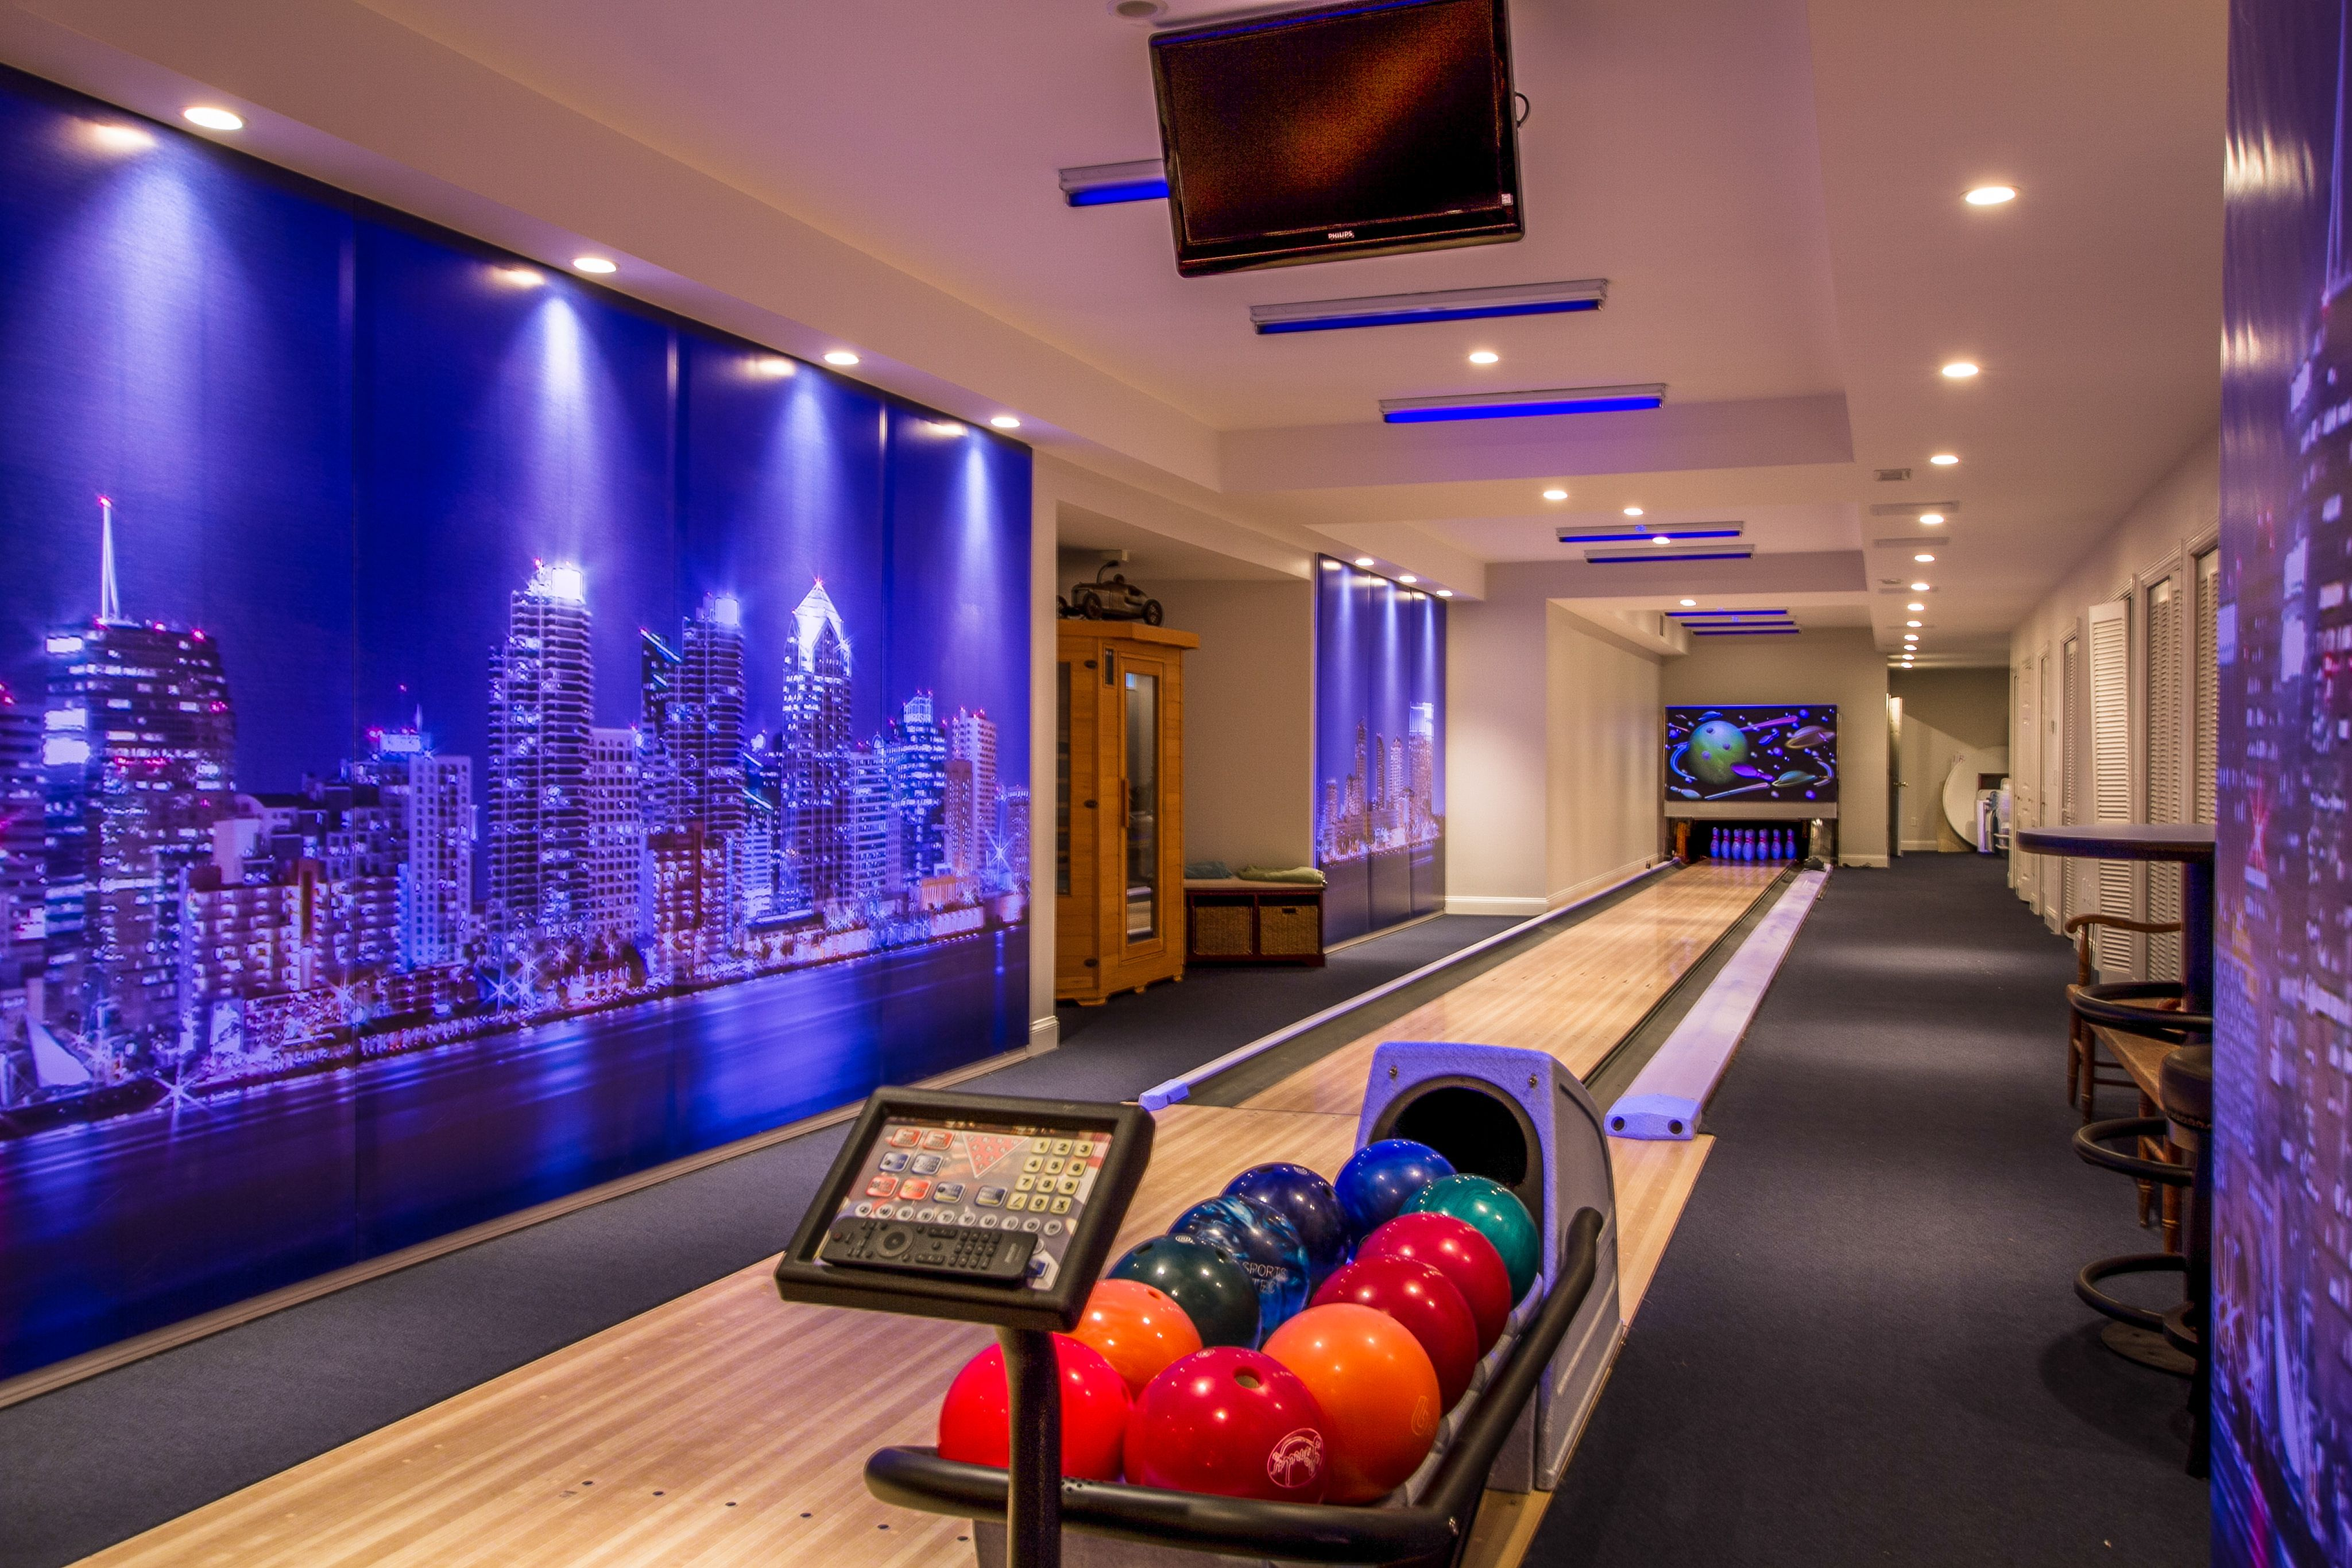 What This house has a basement bowling alley Check out more homes